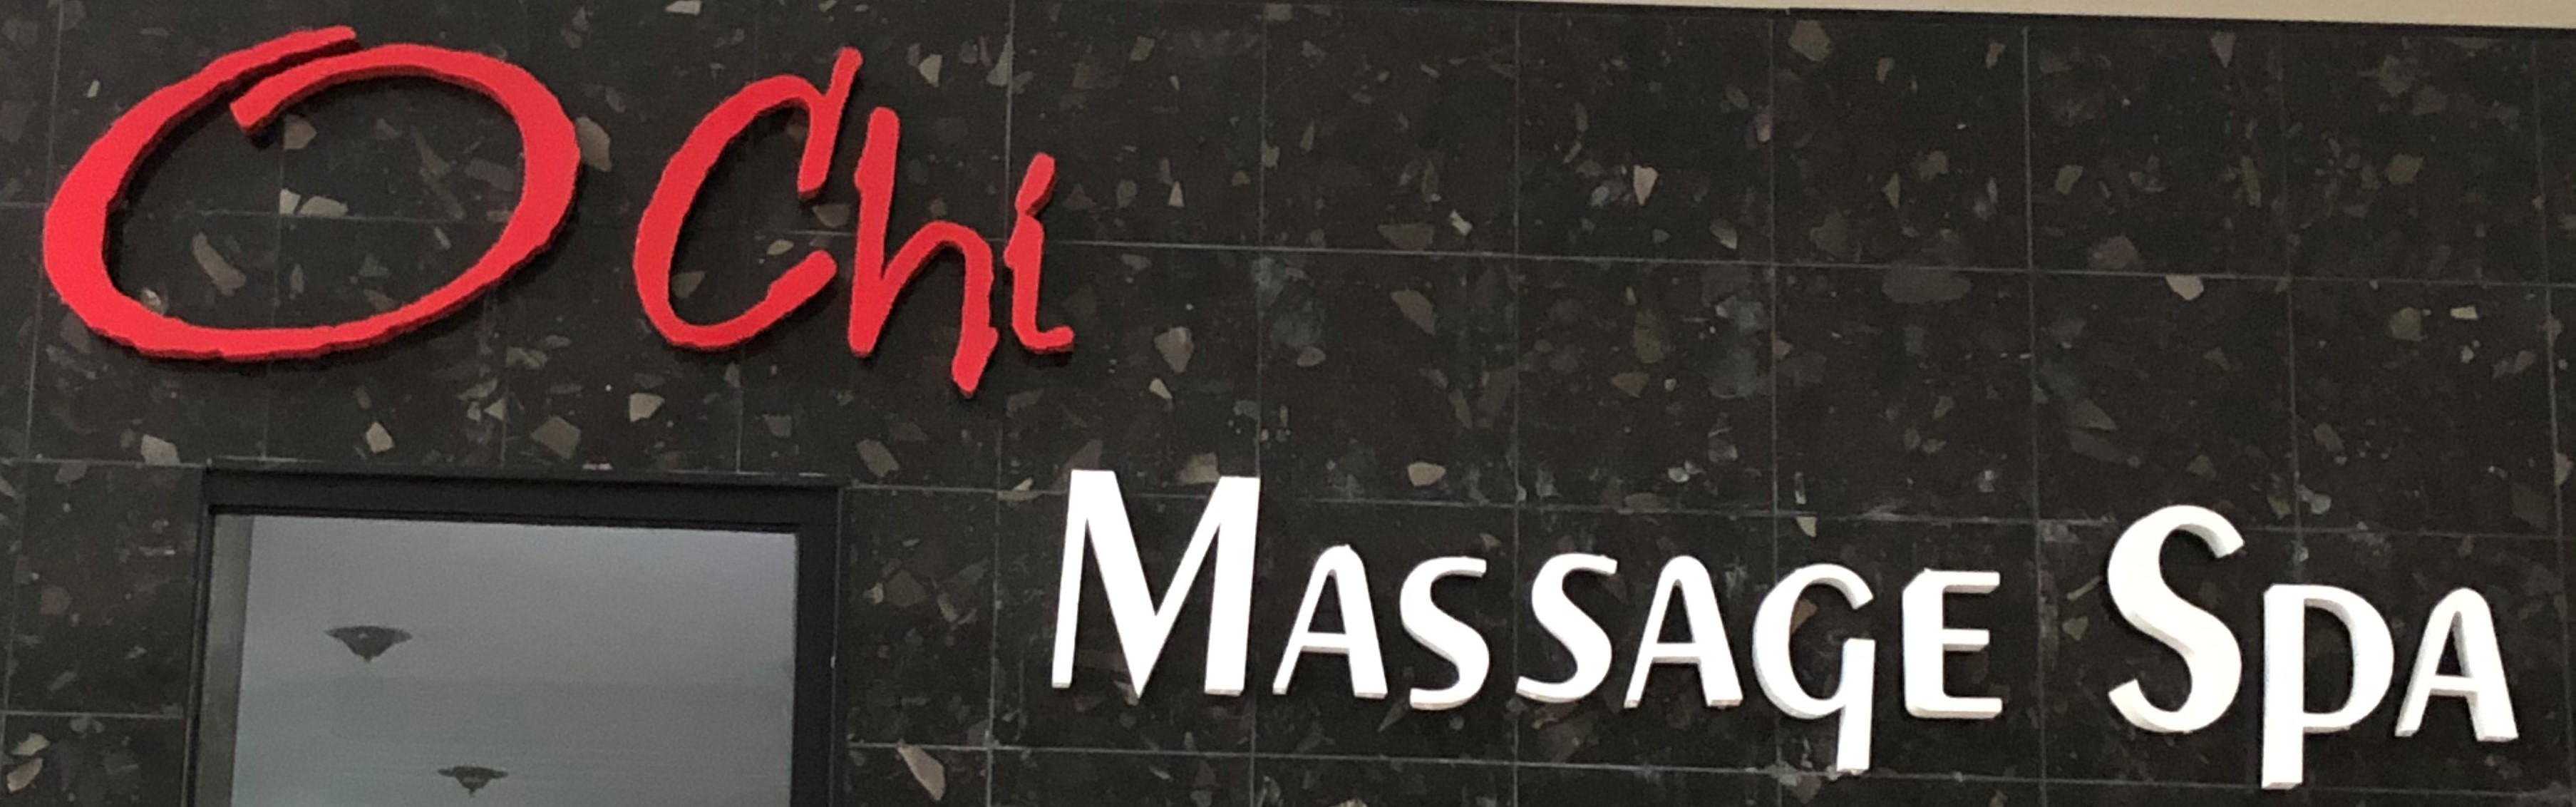 O Chi Massage Spa                        Logo